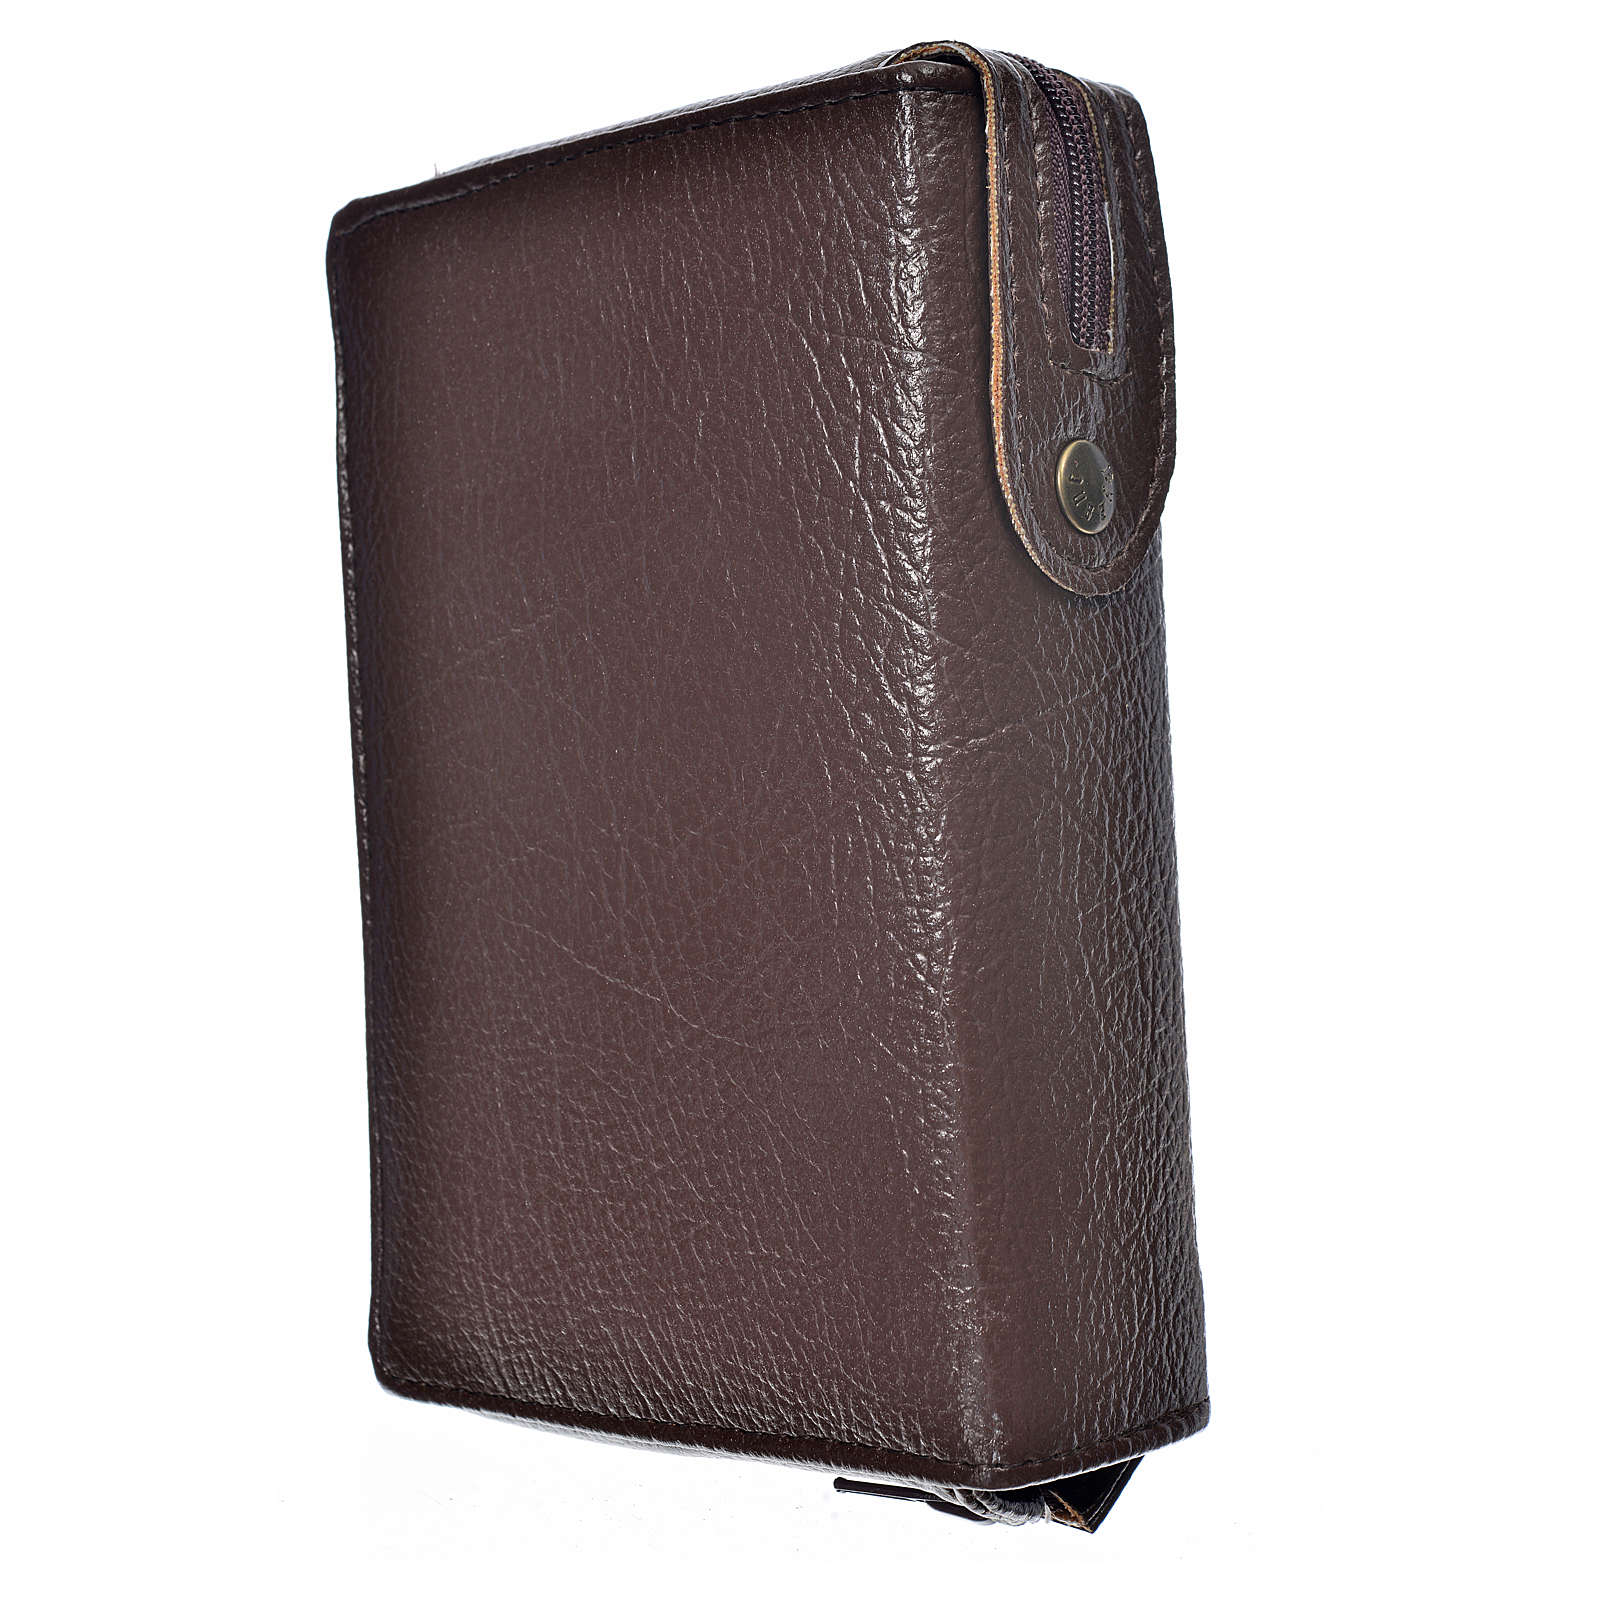 Cover for The New Jerusalem Bible READER EDITION in English, dark brown 4